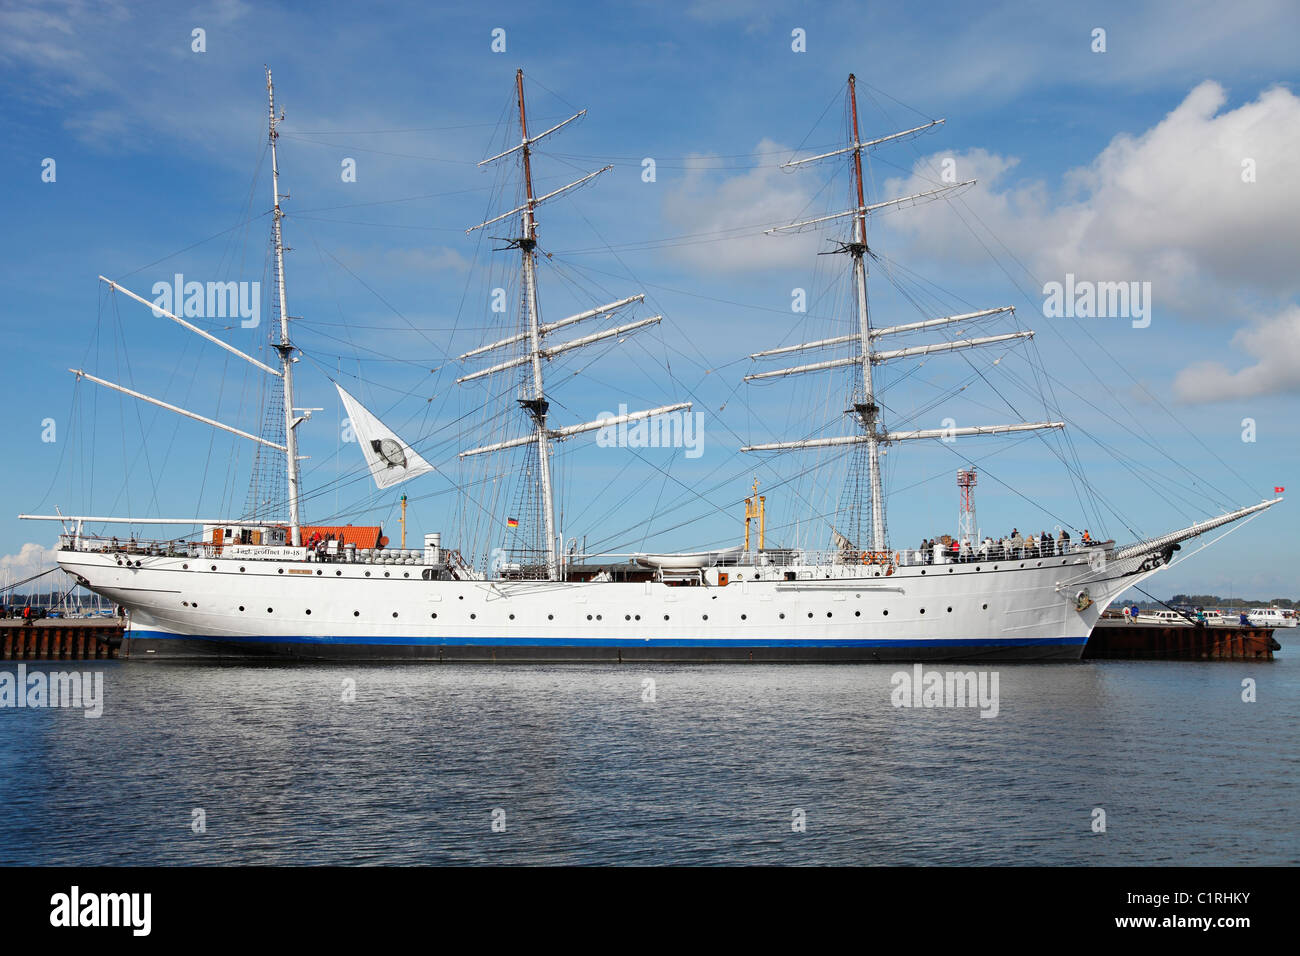 The Gorch Fock (1958) is a tall ship of the German Navy (Deutsche Marine) anchored in the harbour in Stralsund. - Stock Image